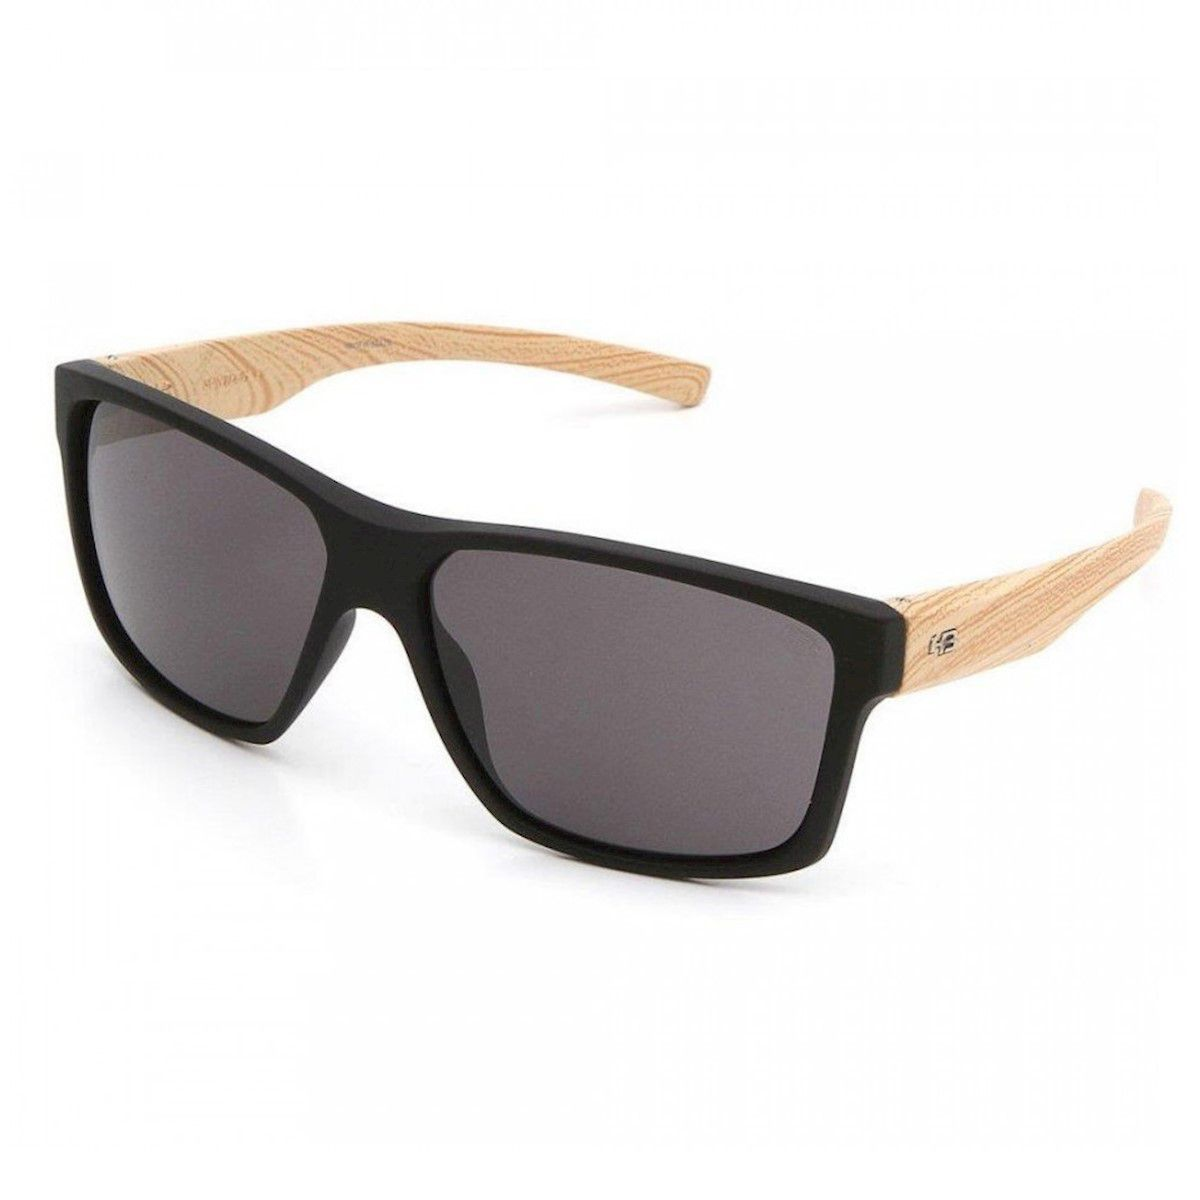 Óculos de Sol HB Freak Matte Lenses  Black Wood Gray